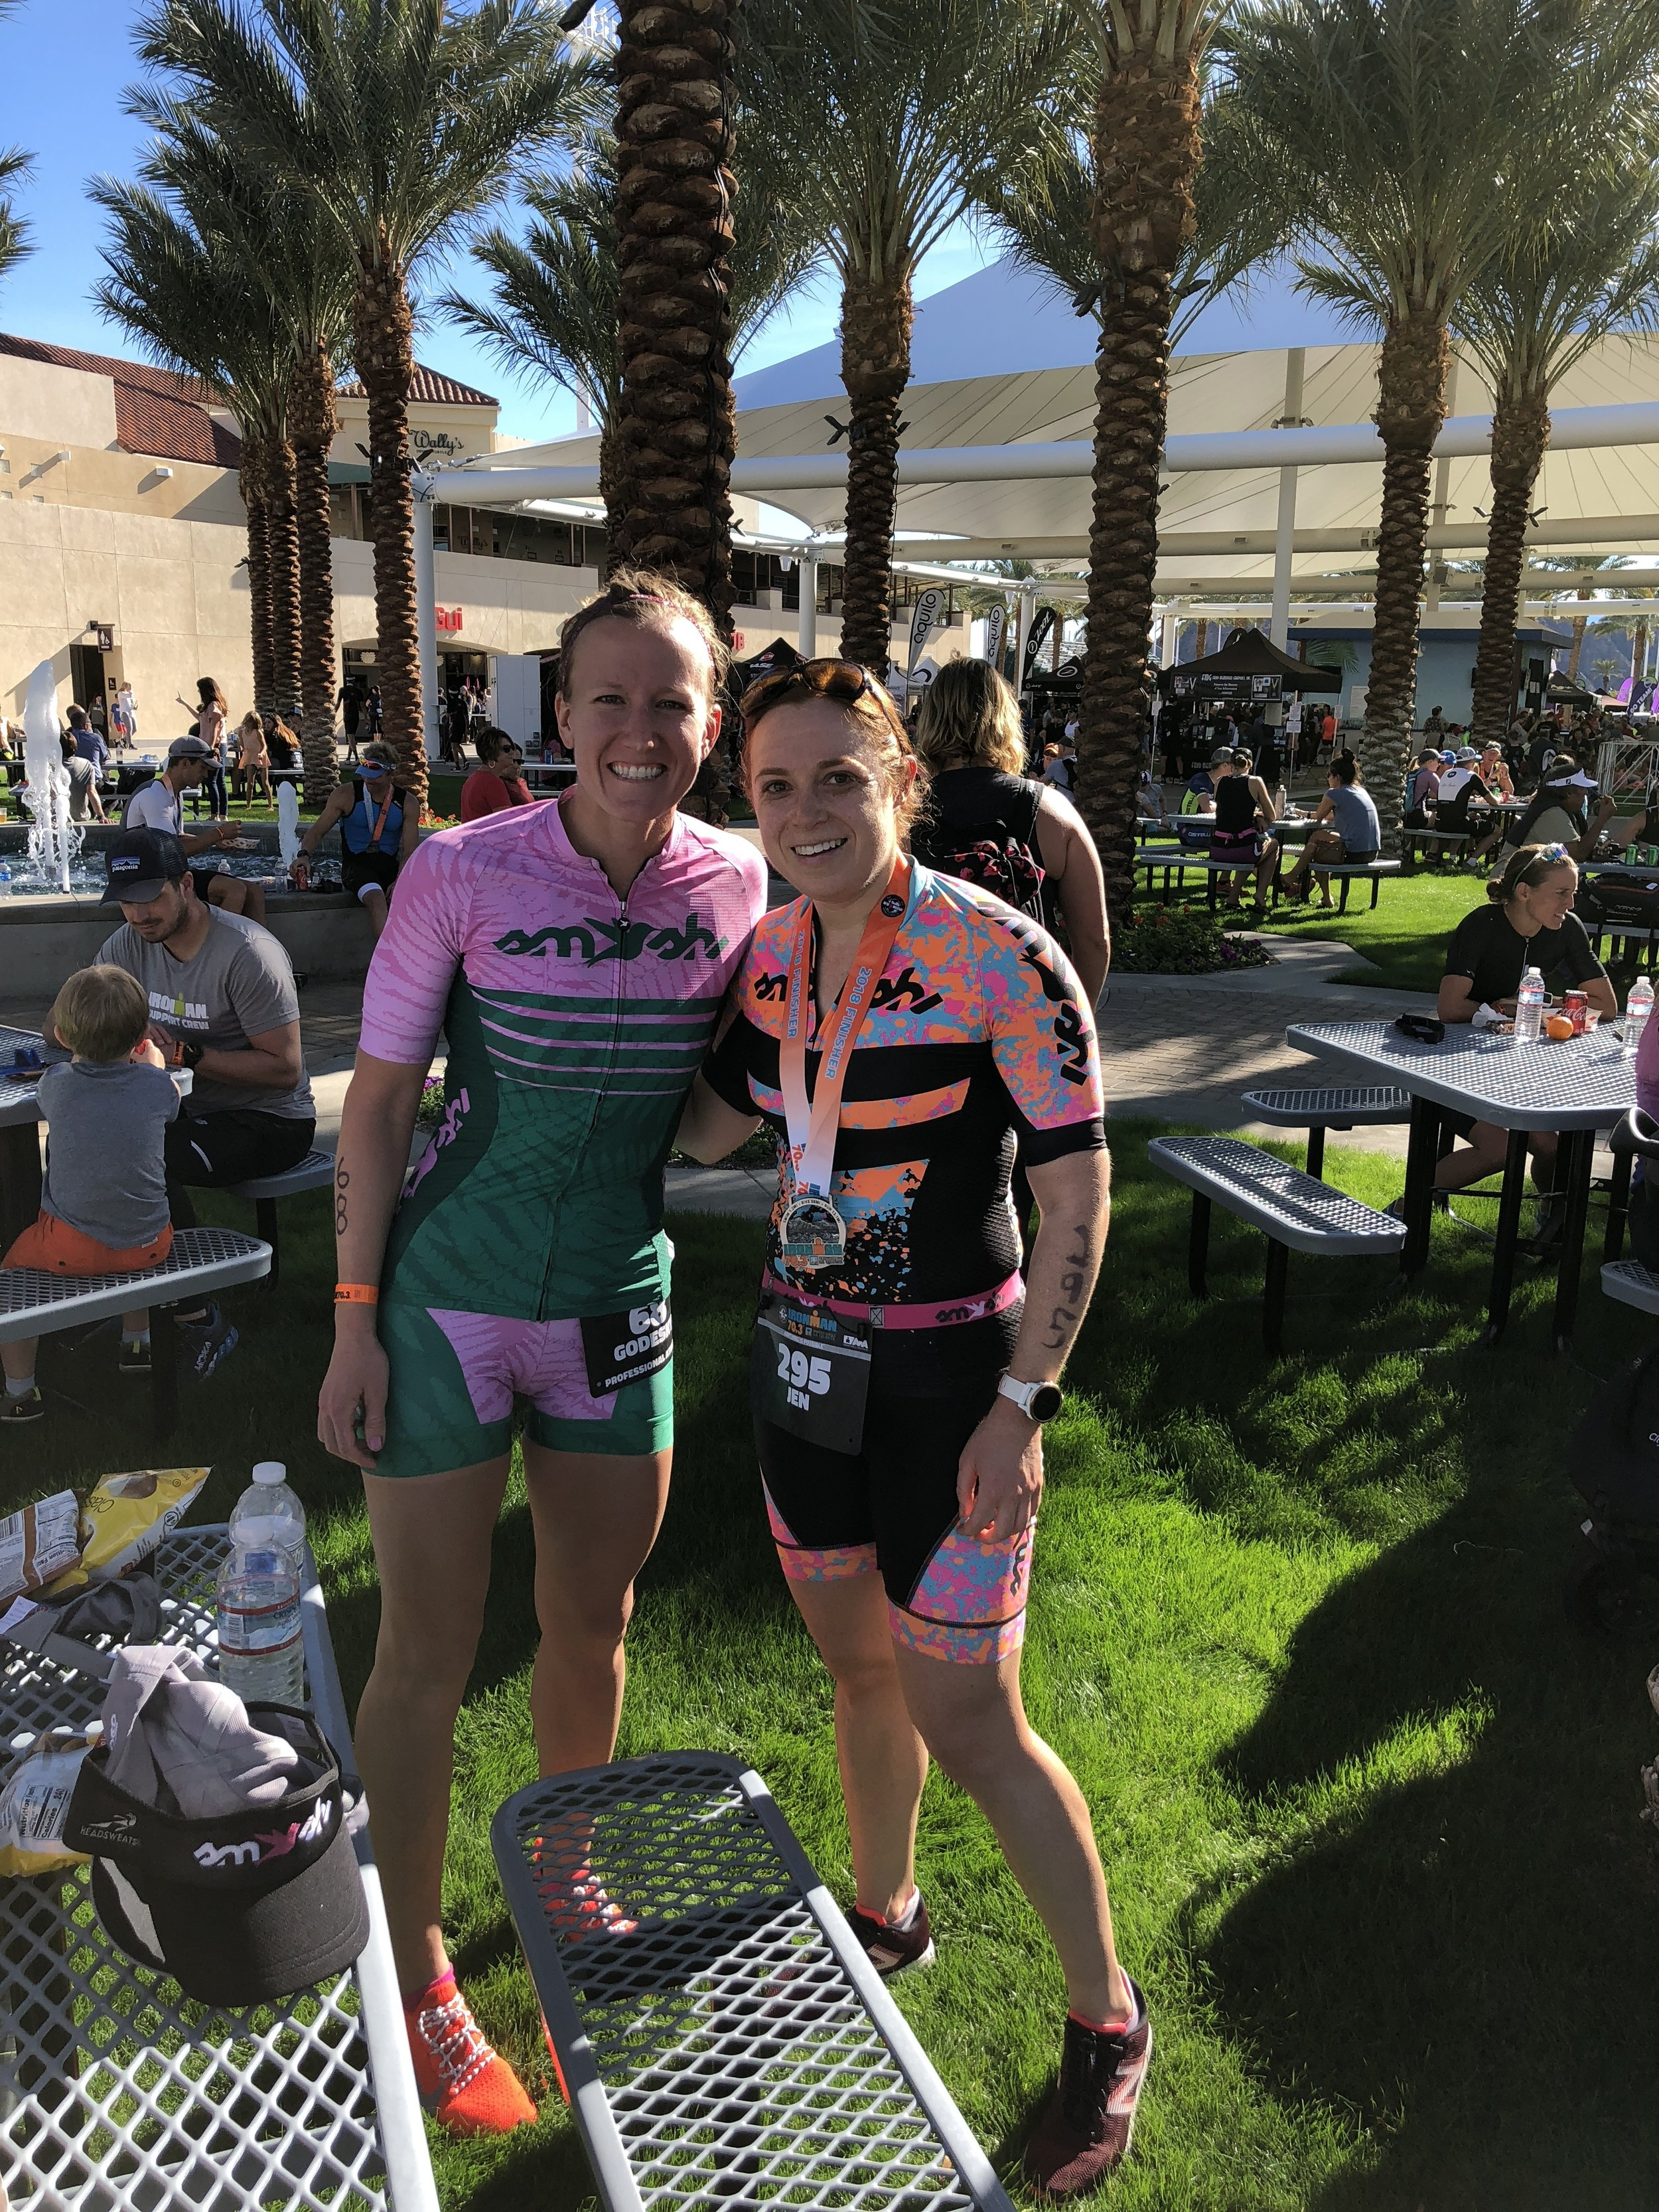 From left, my teammate's professional triathlete Alyssa Godesky, and her athlete, the amazing, Jennifer Madeline.